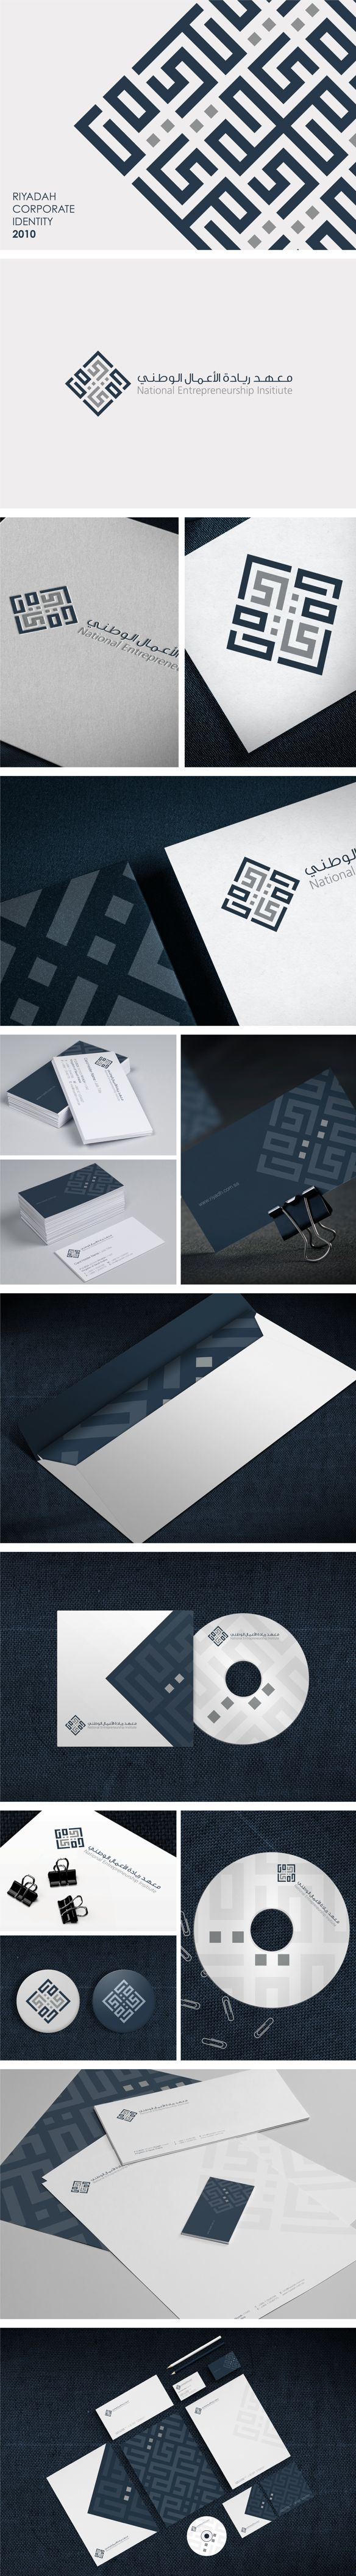 Riyadah Identity // Branding by Mohd Almousa, via Behance - love the geometric lettering of the logo.